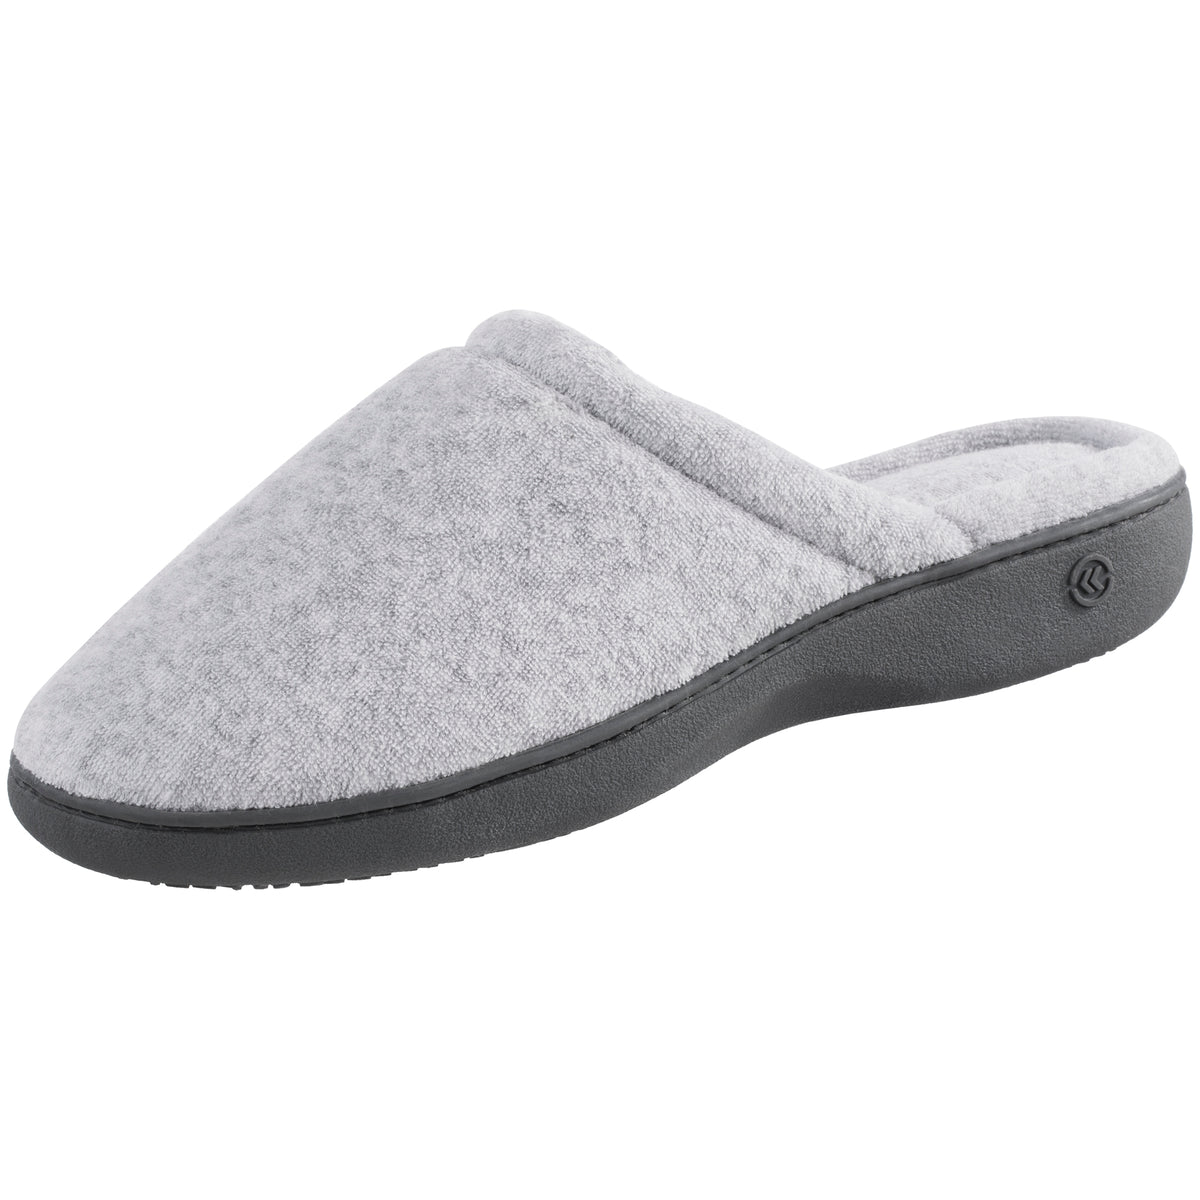 Isotoner Women's Terry ContourStep Clog Slippers